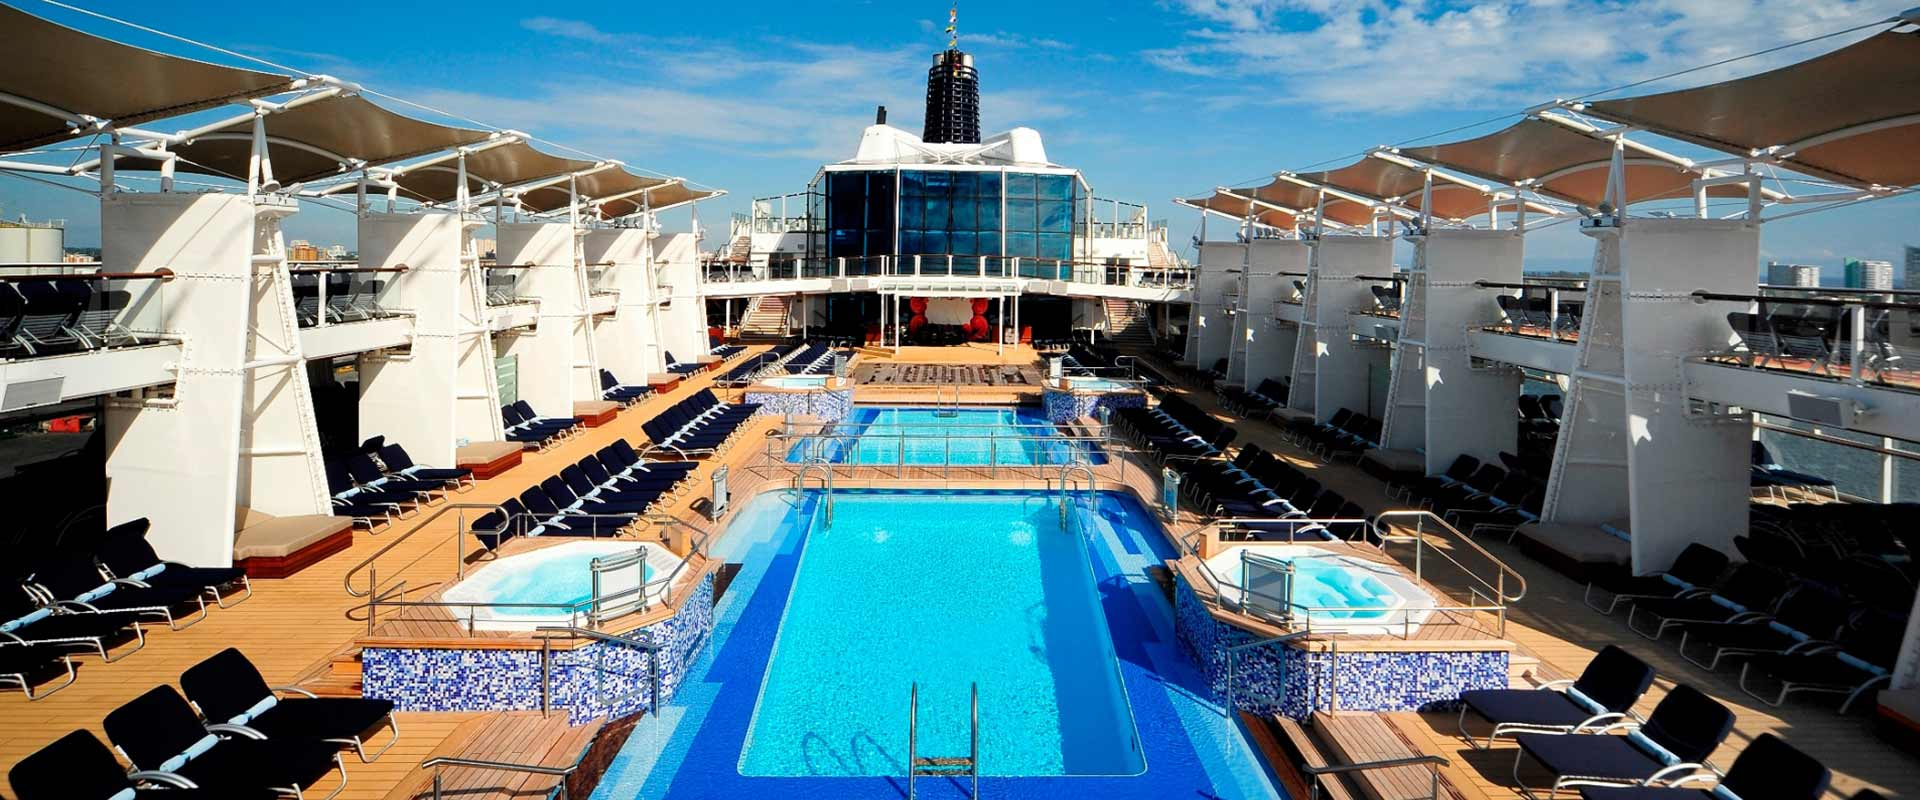 Projekte Celebrity Cruises – Solstice Class